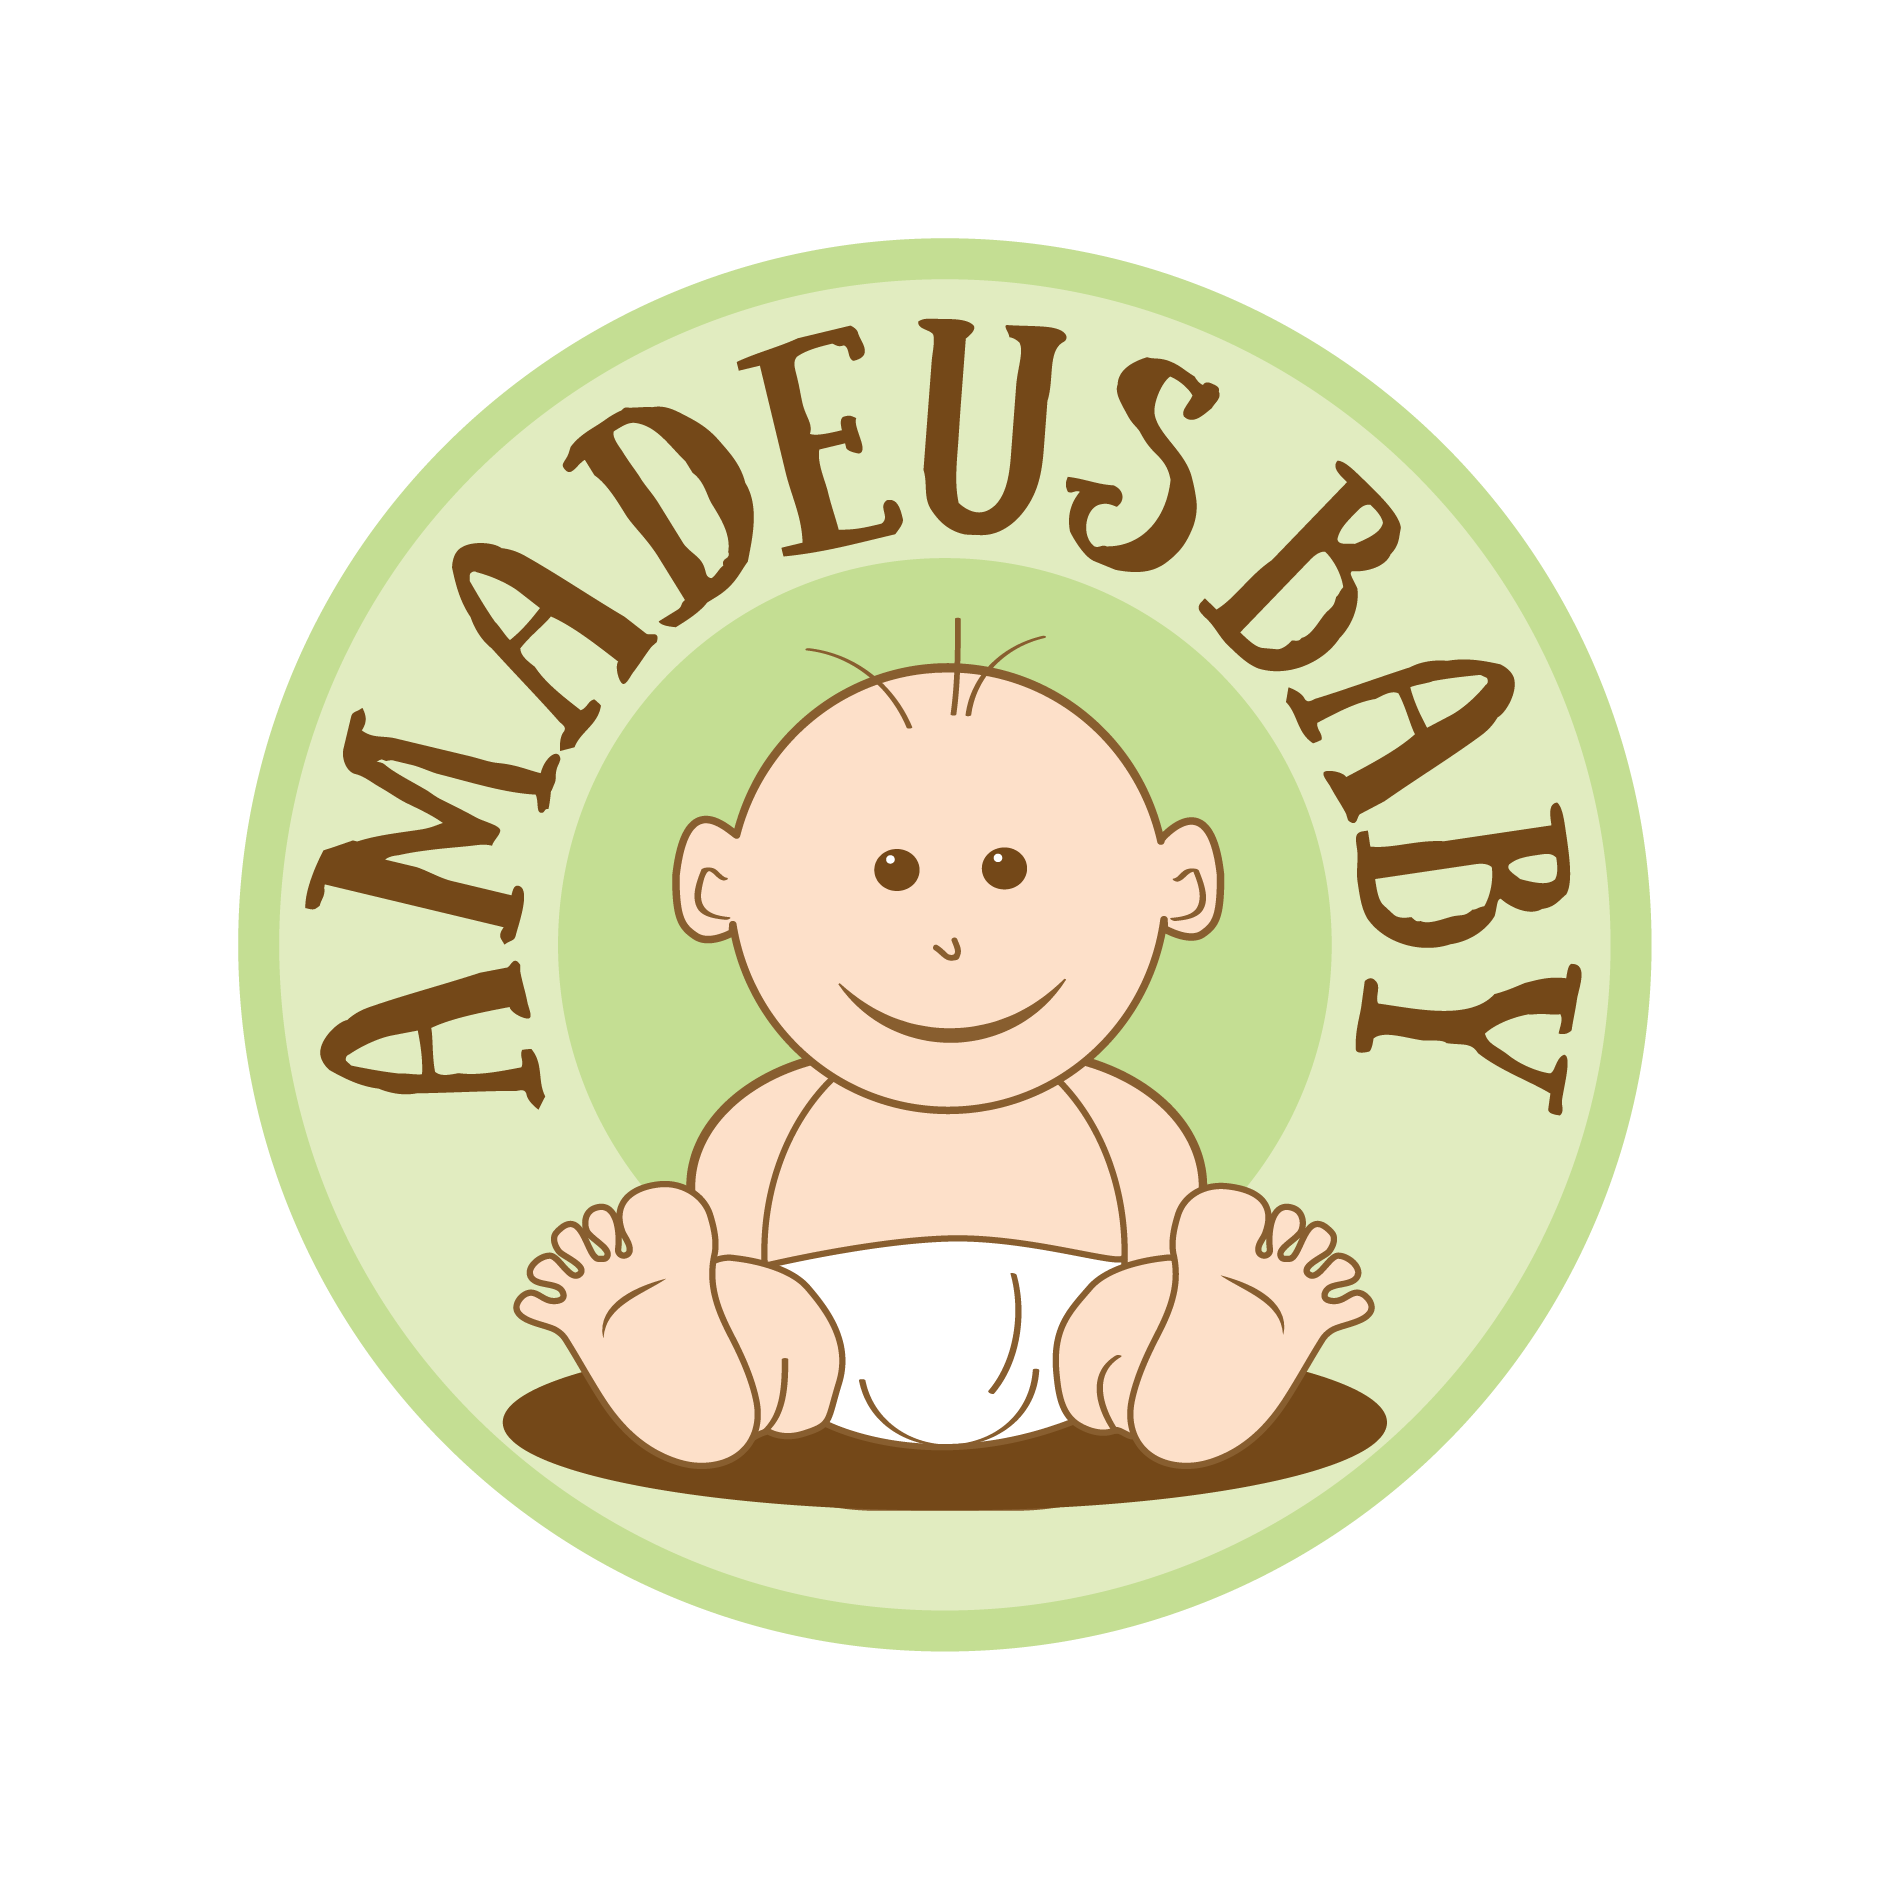 A brand logo for a babycare product line